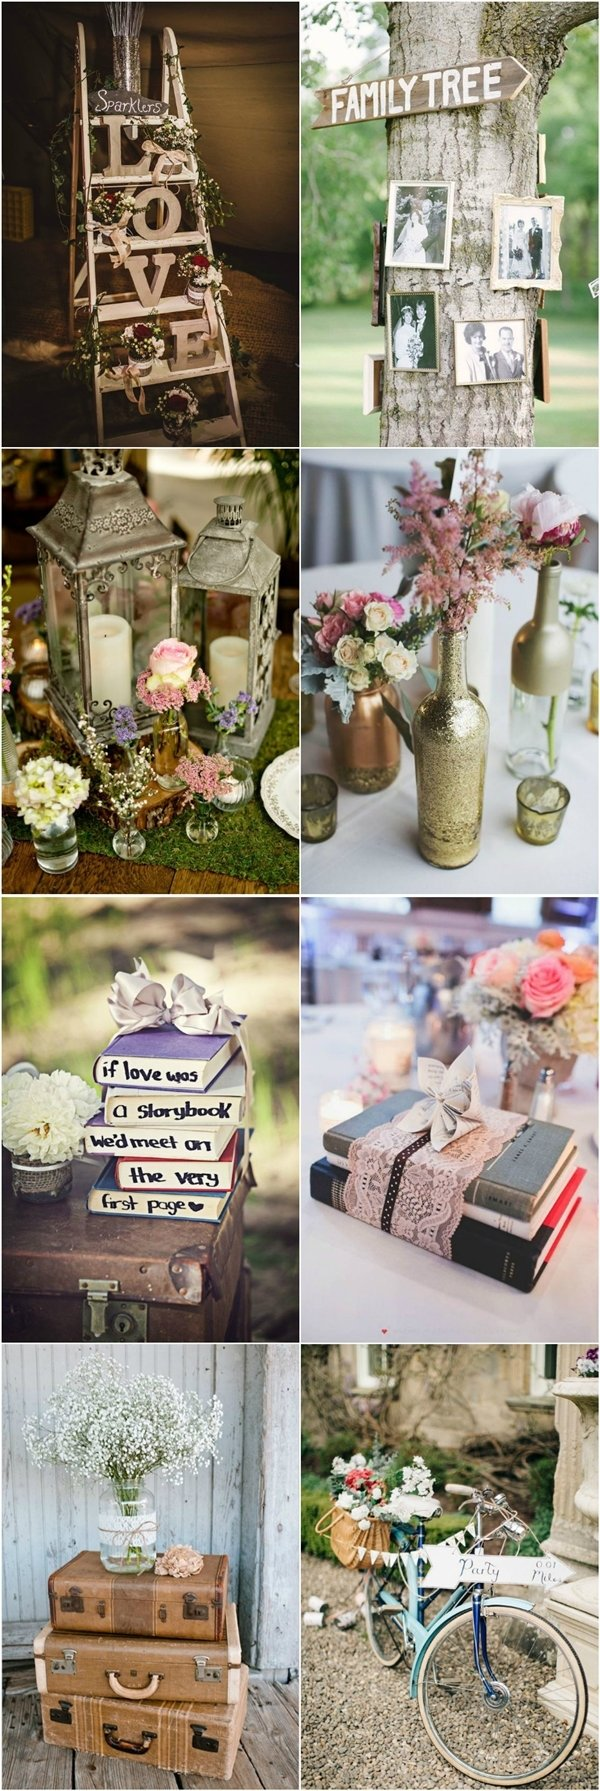 30 stunning vintage wedding ideas for spring/summer | tulle